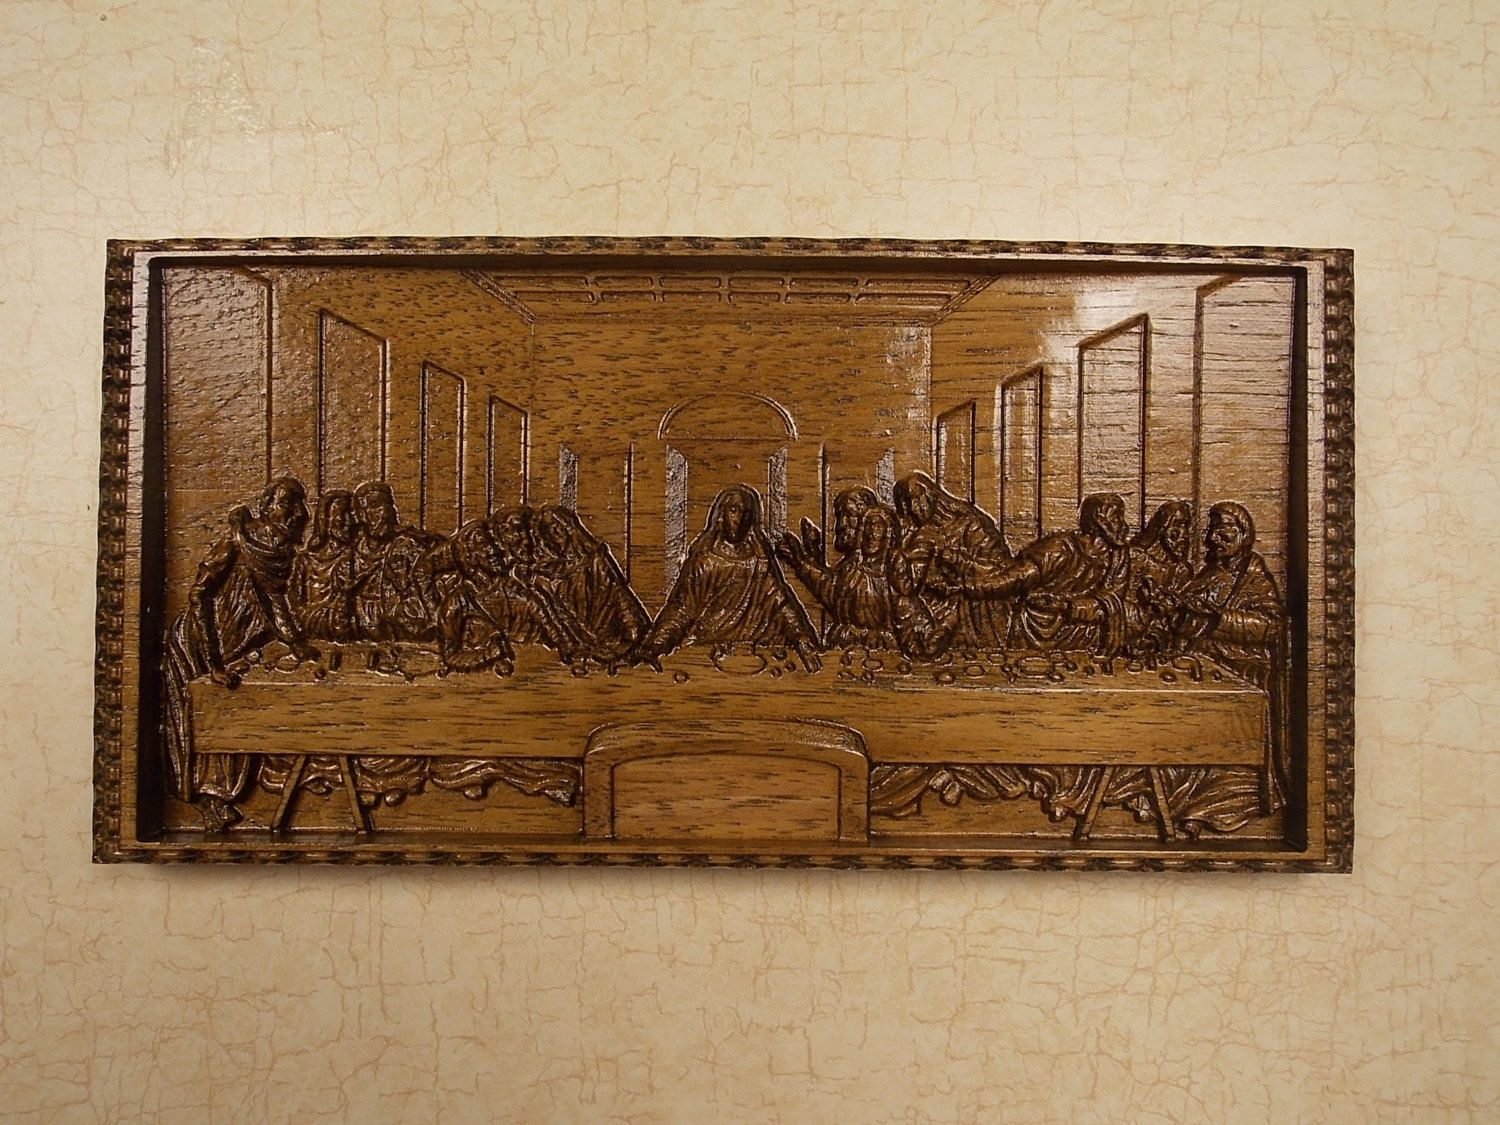 Leonardo Da Vinci The Last Supper Wall Decor Cnc Wooden Gifts 8 X 4 Hickory Wood Art Gift For Pastor Religious